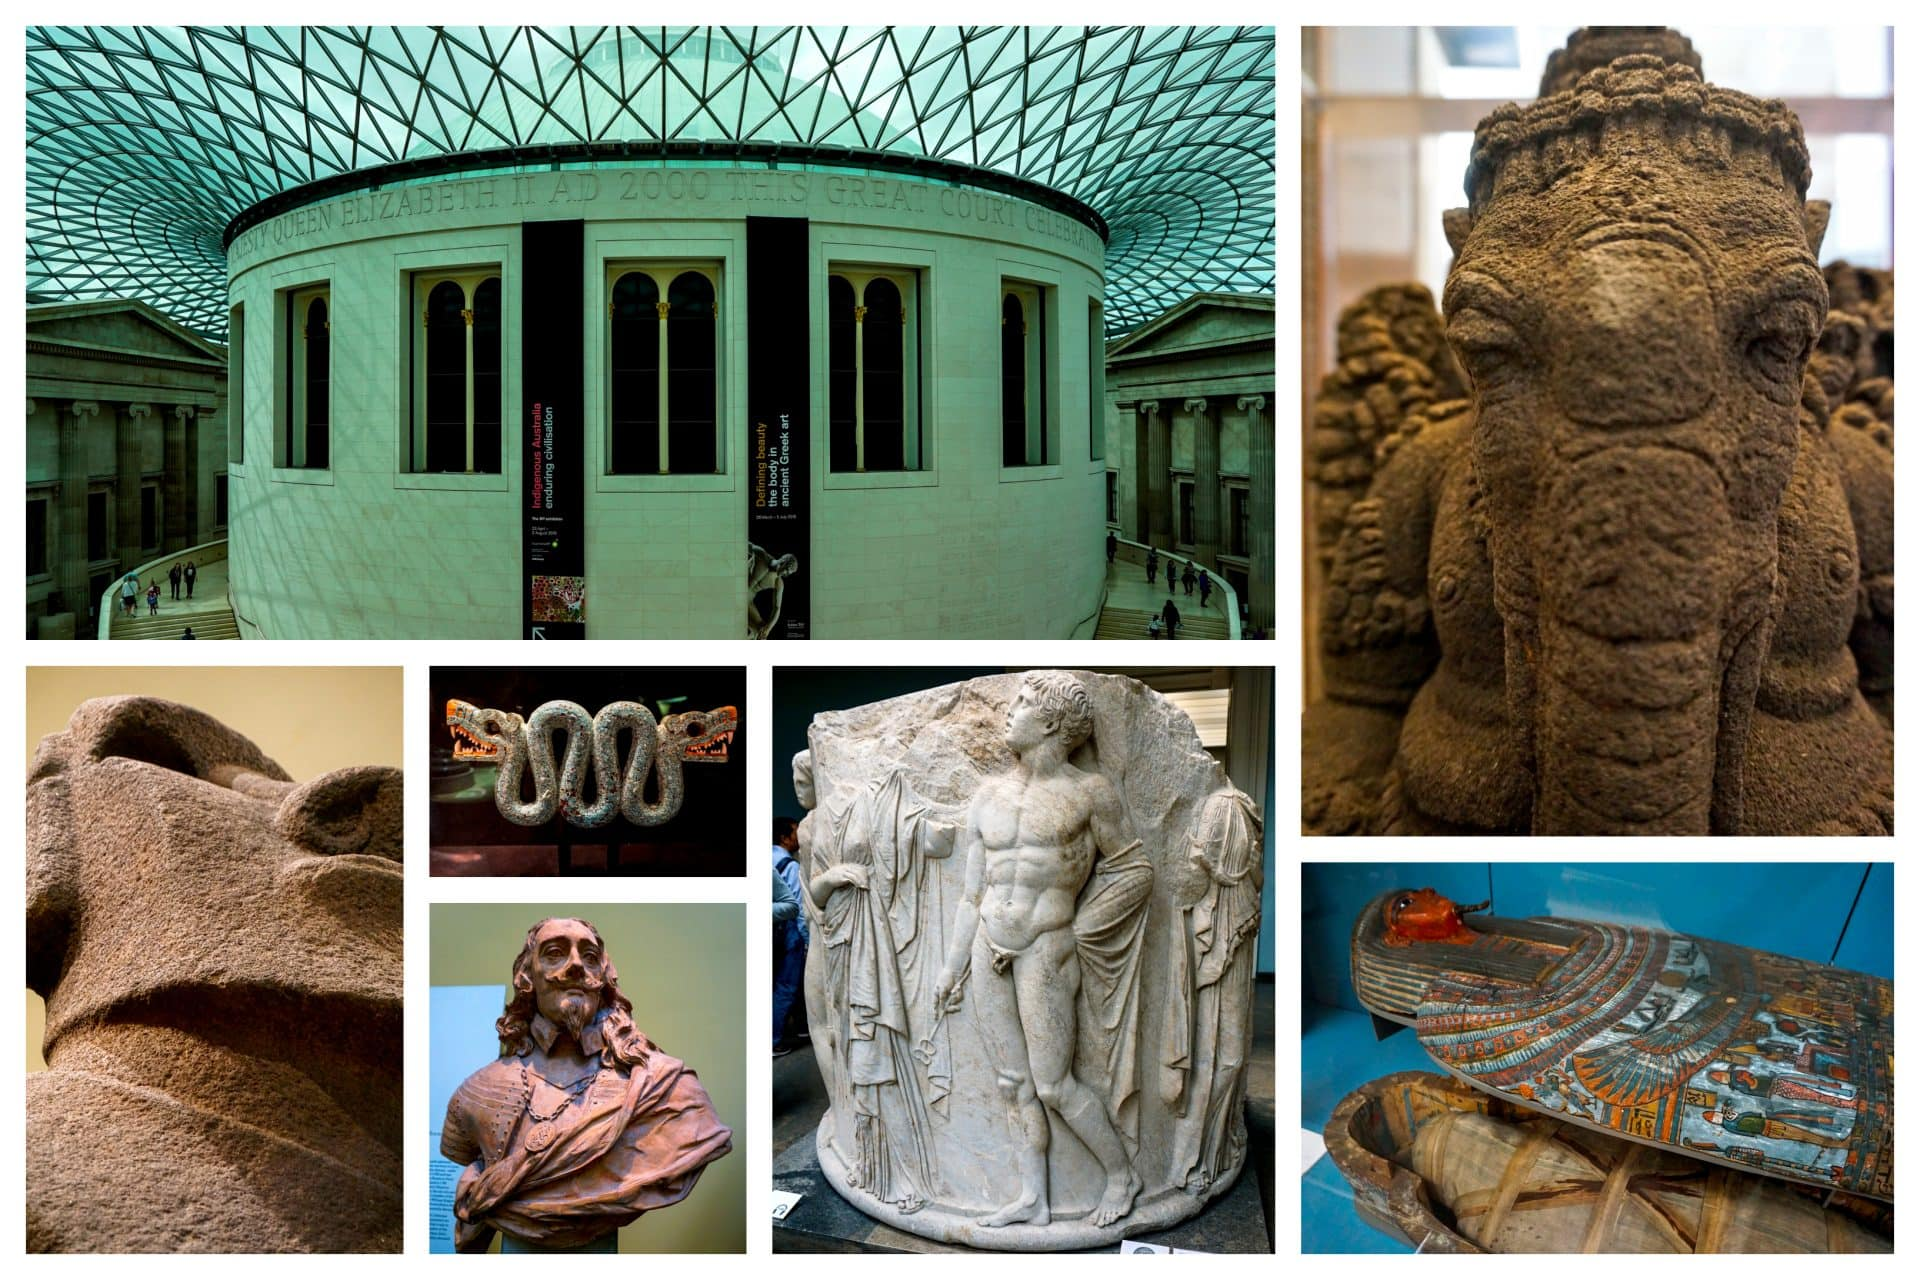 British museum, London - Experiencing the Globe